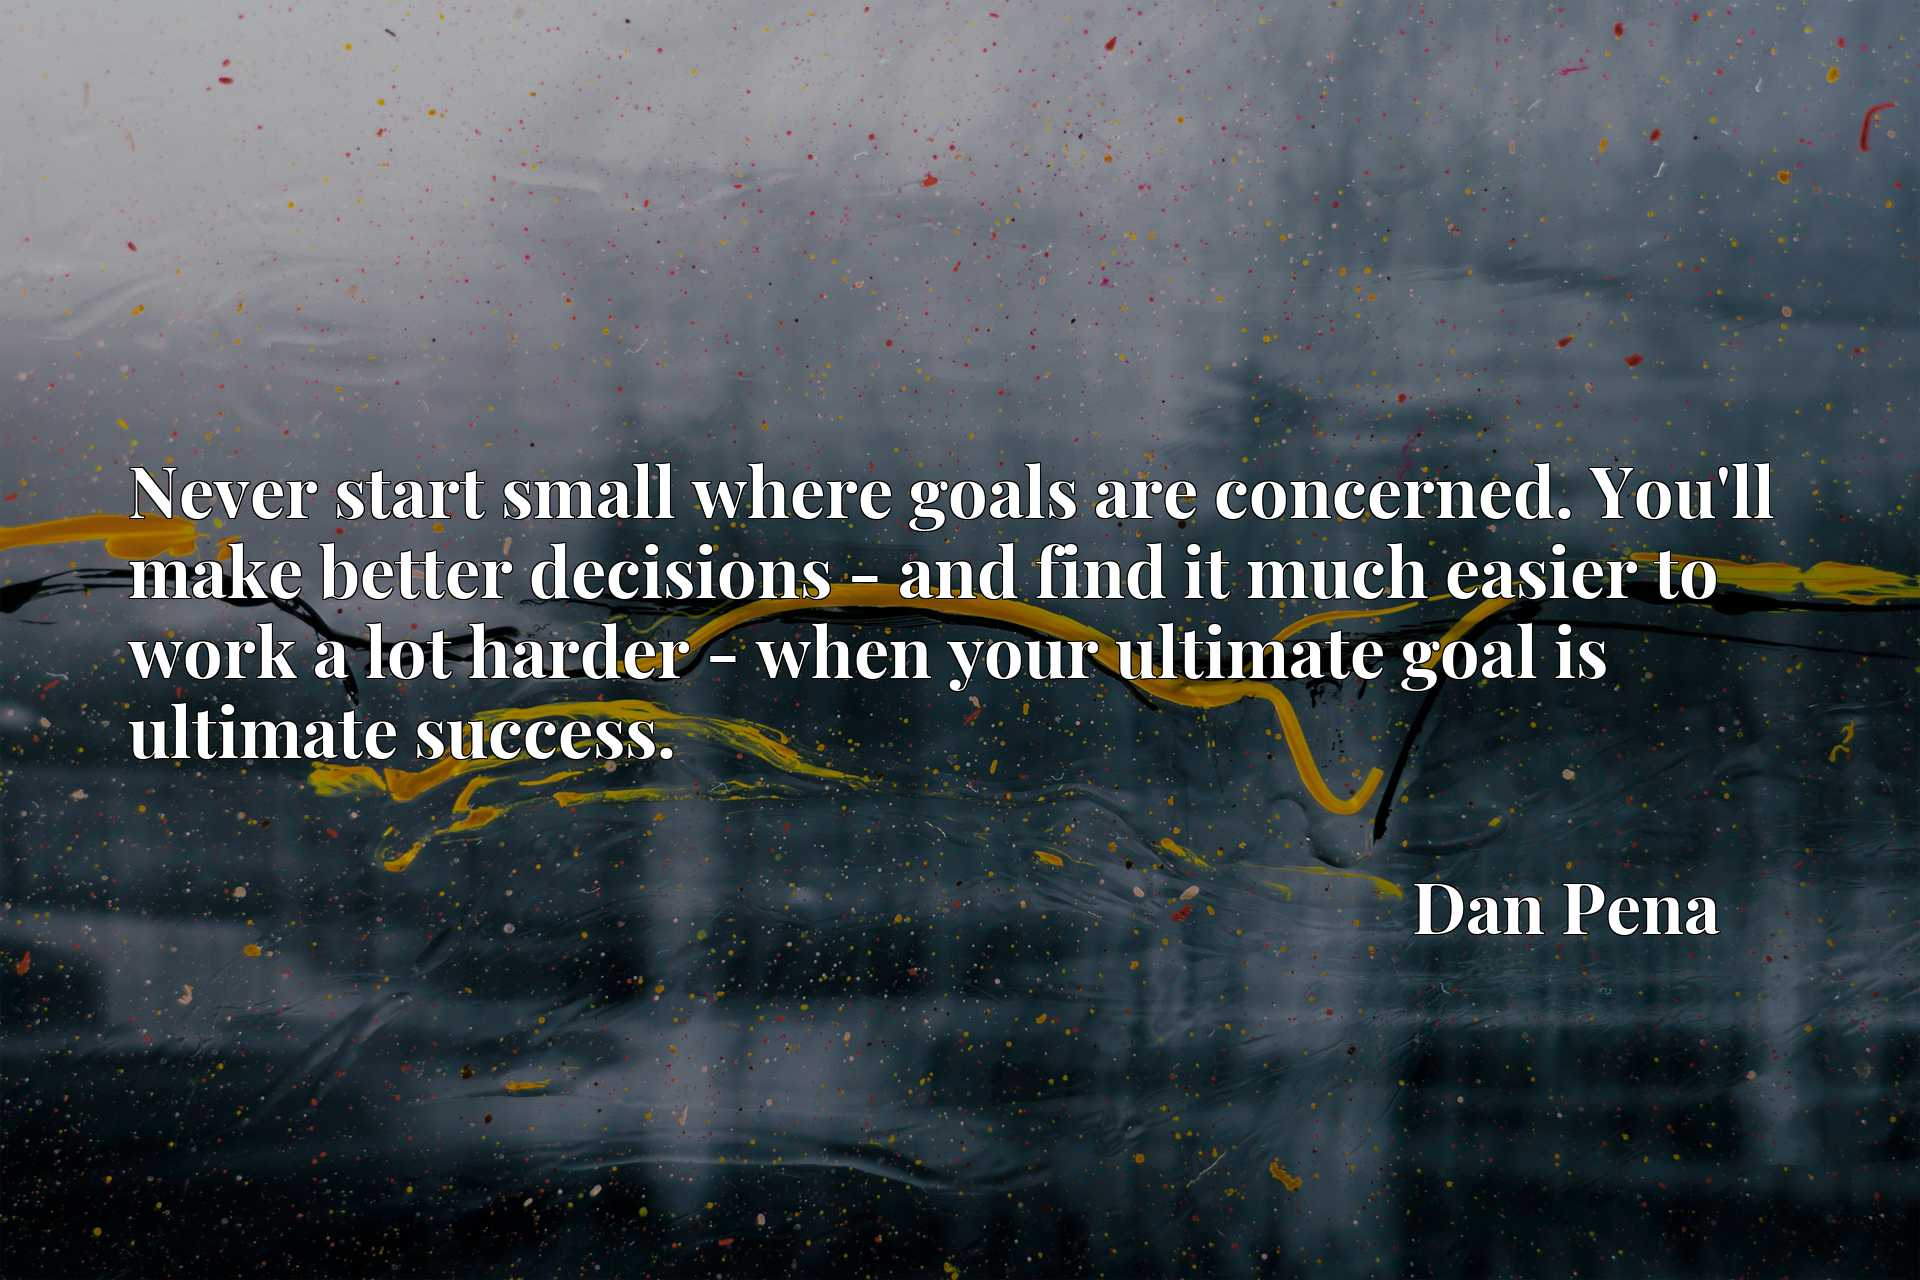 Never start small where goals are concerned. You'll make better decisions - and find it much easier to work a lot harder - when your ultimate goal is ultimate success.